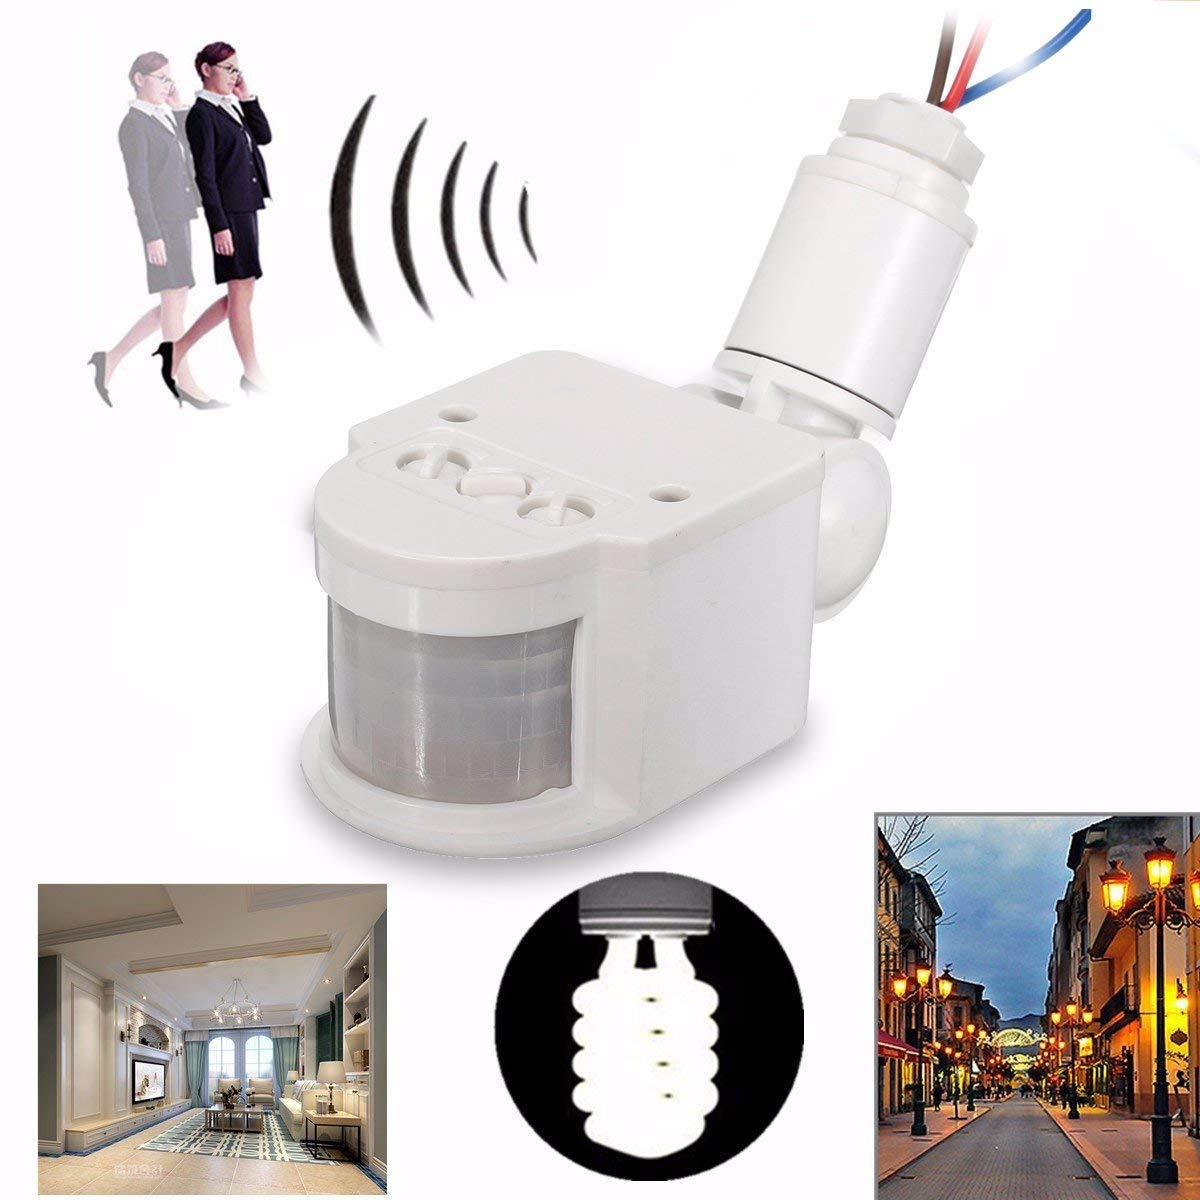 Wincom Dishman LIGHTING ACCESSORIES Outdoor LED Security Infrared PIR Motion Sensor Detector Wall Light Lamp Switch AC110V-240V